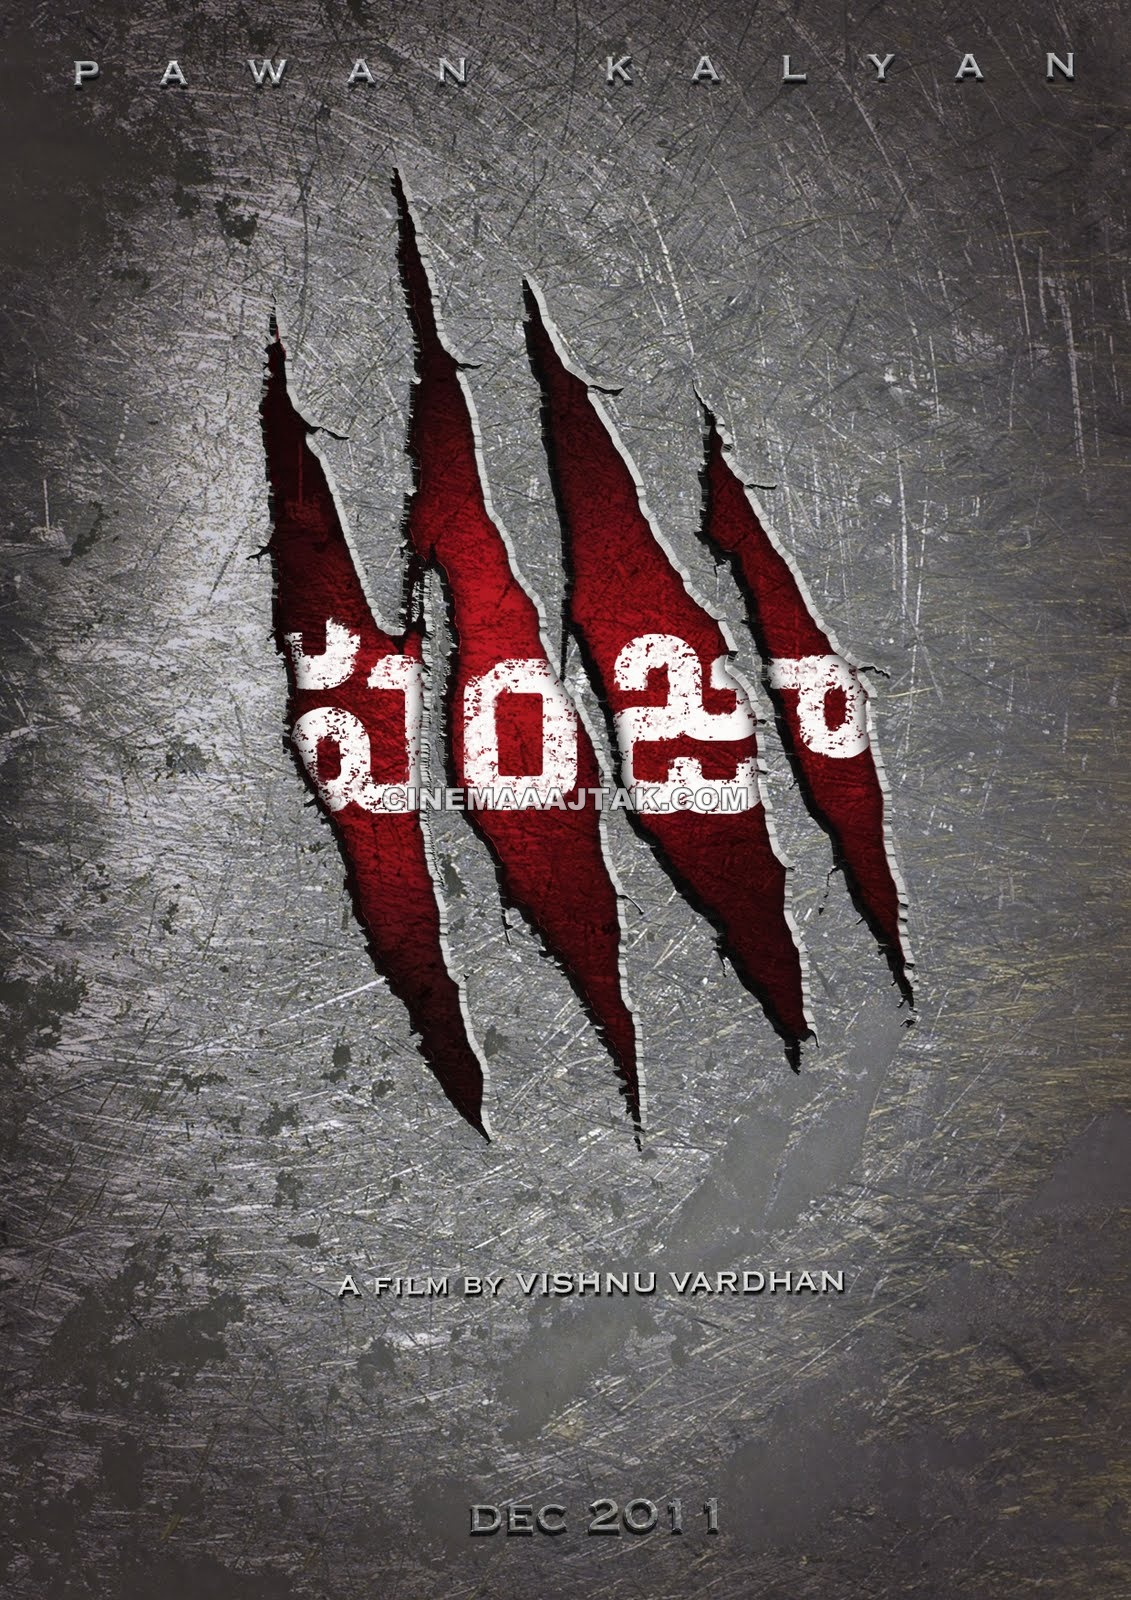 http://3.bp.blogspot.com/-E-KB9nq4jeg/TqqykTB0l7I/AAAAAAAAJl0/n8R3FiZKd3c/s1600/Panjaa+Movie+Latest+Exclusive+Wallpapers.jpg